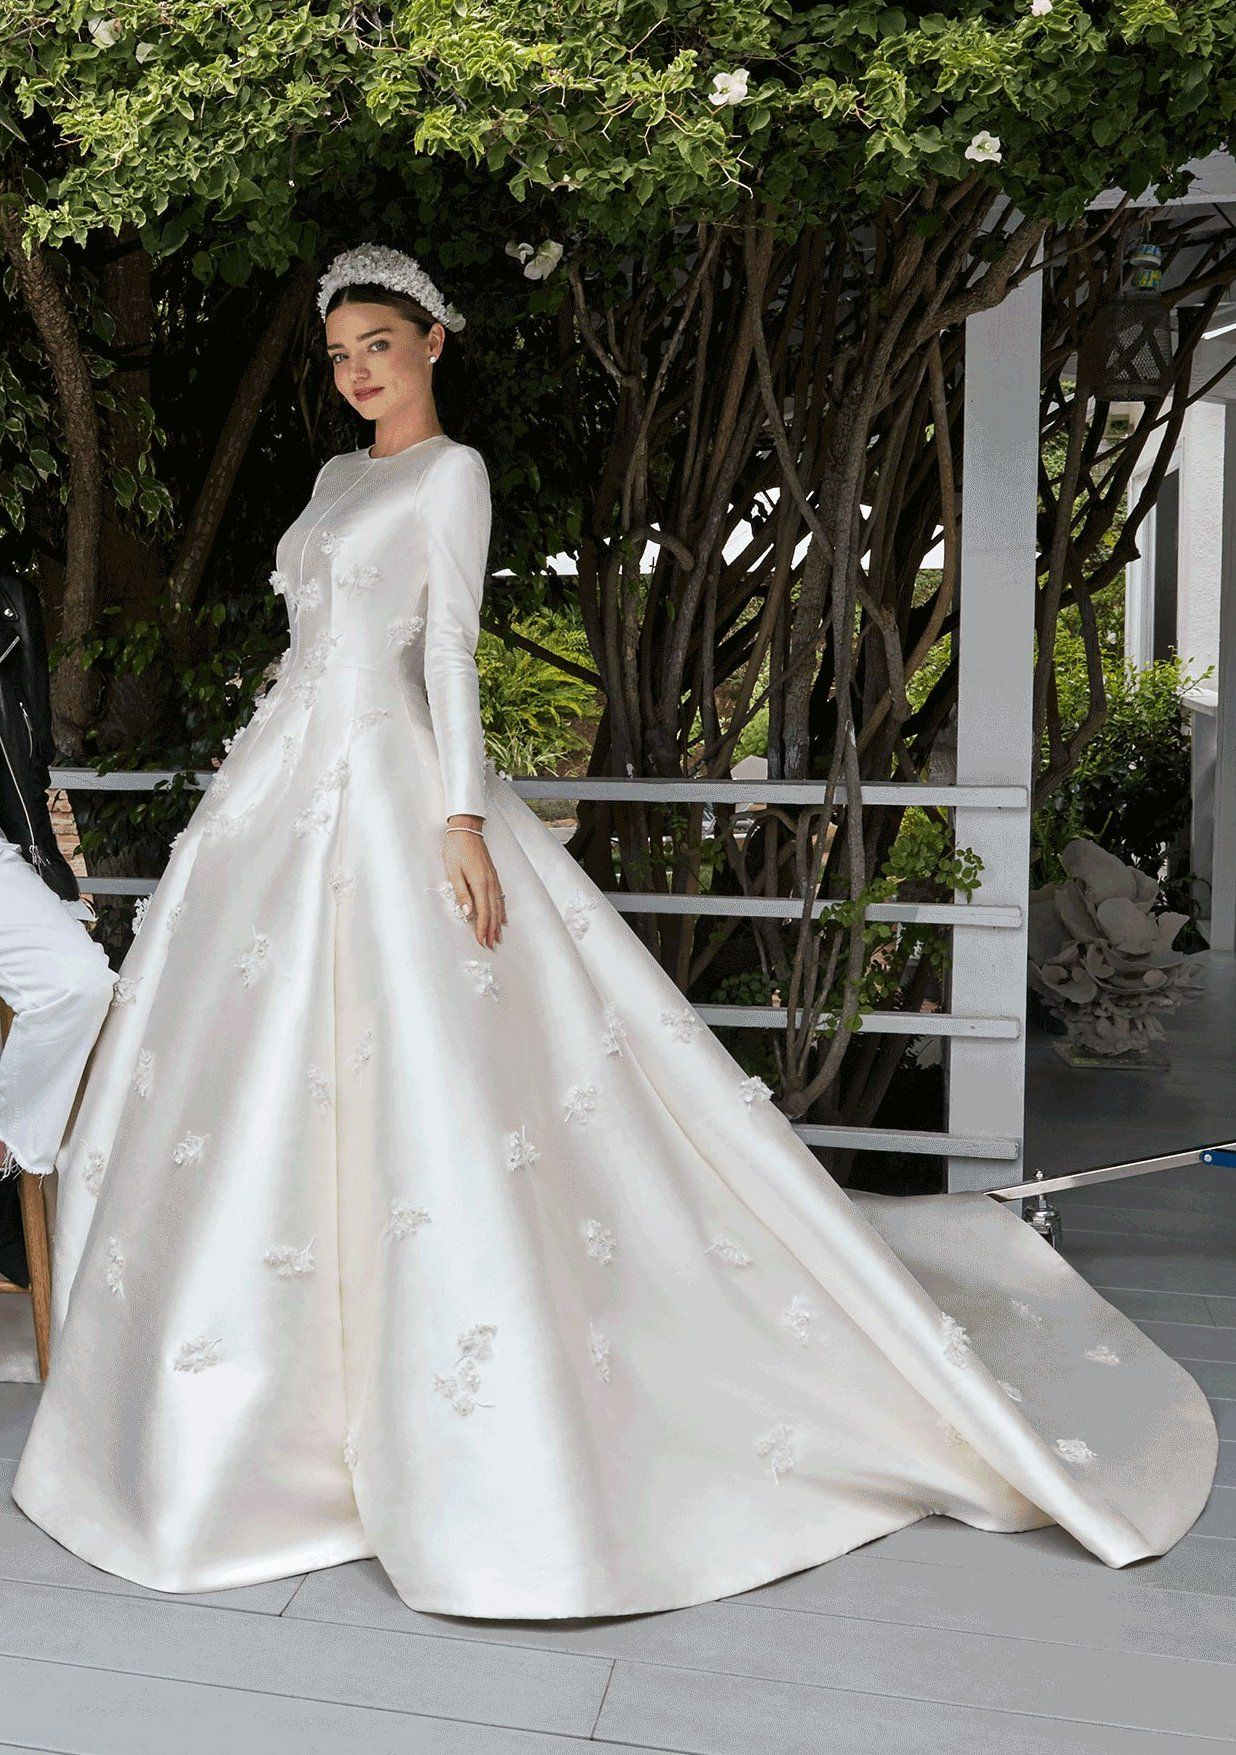 Miranda Kerr Ties The Knot In Custom Christian Dior Bestdressed